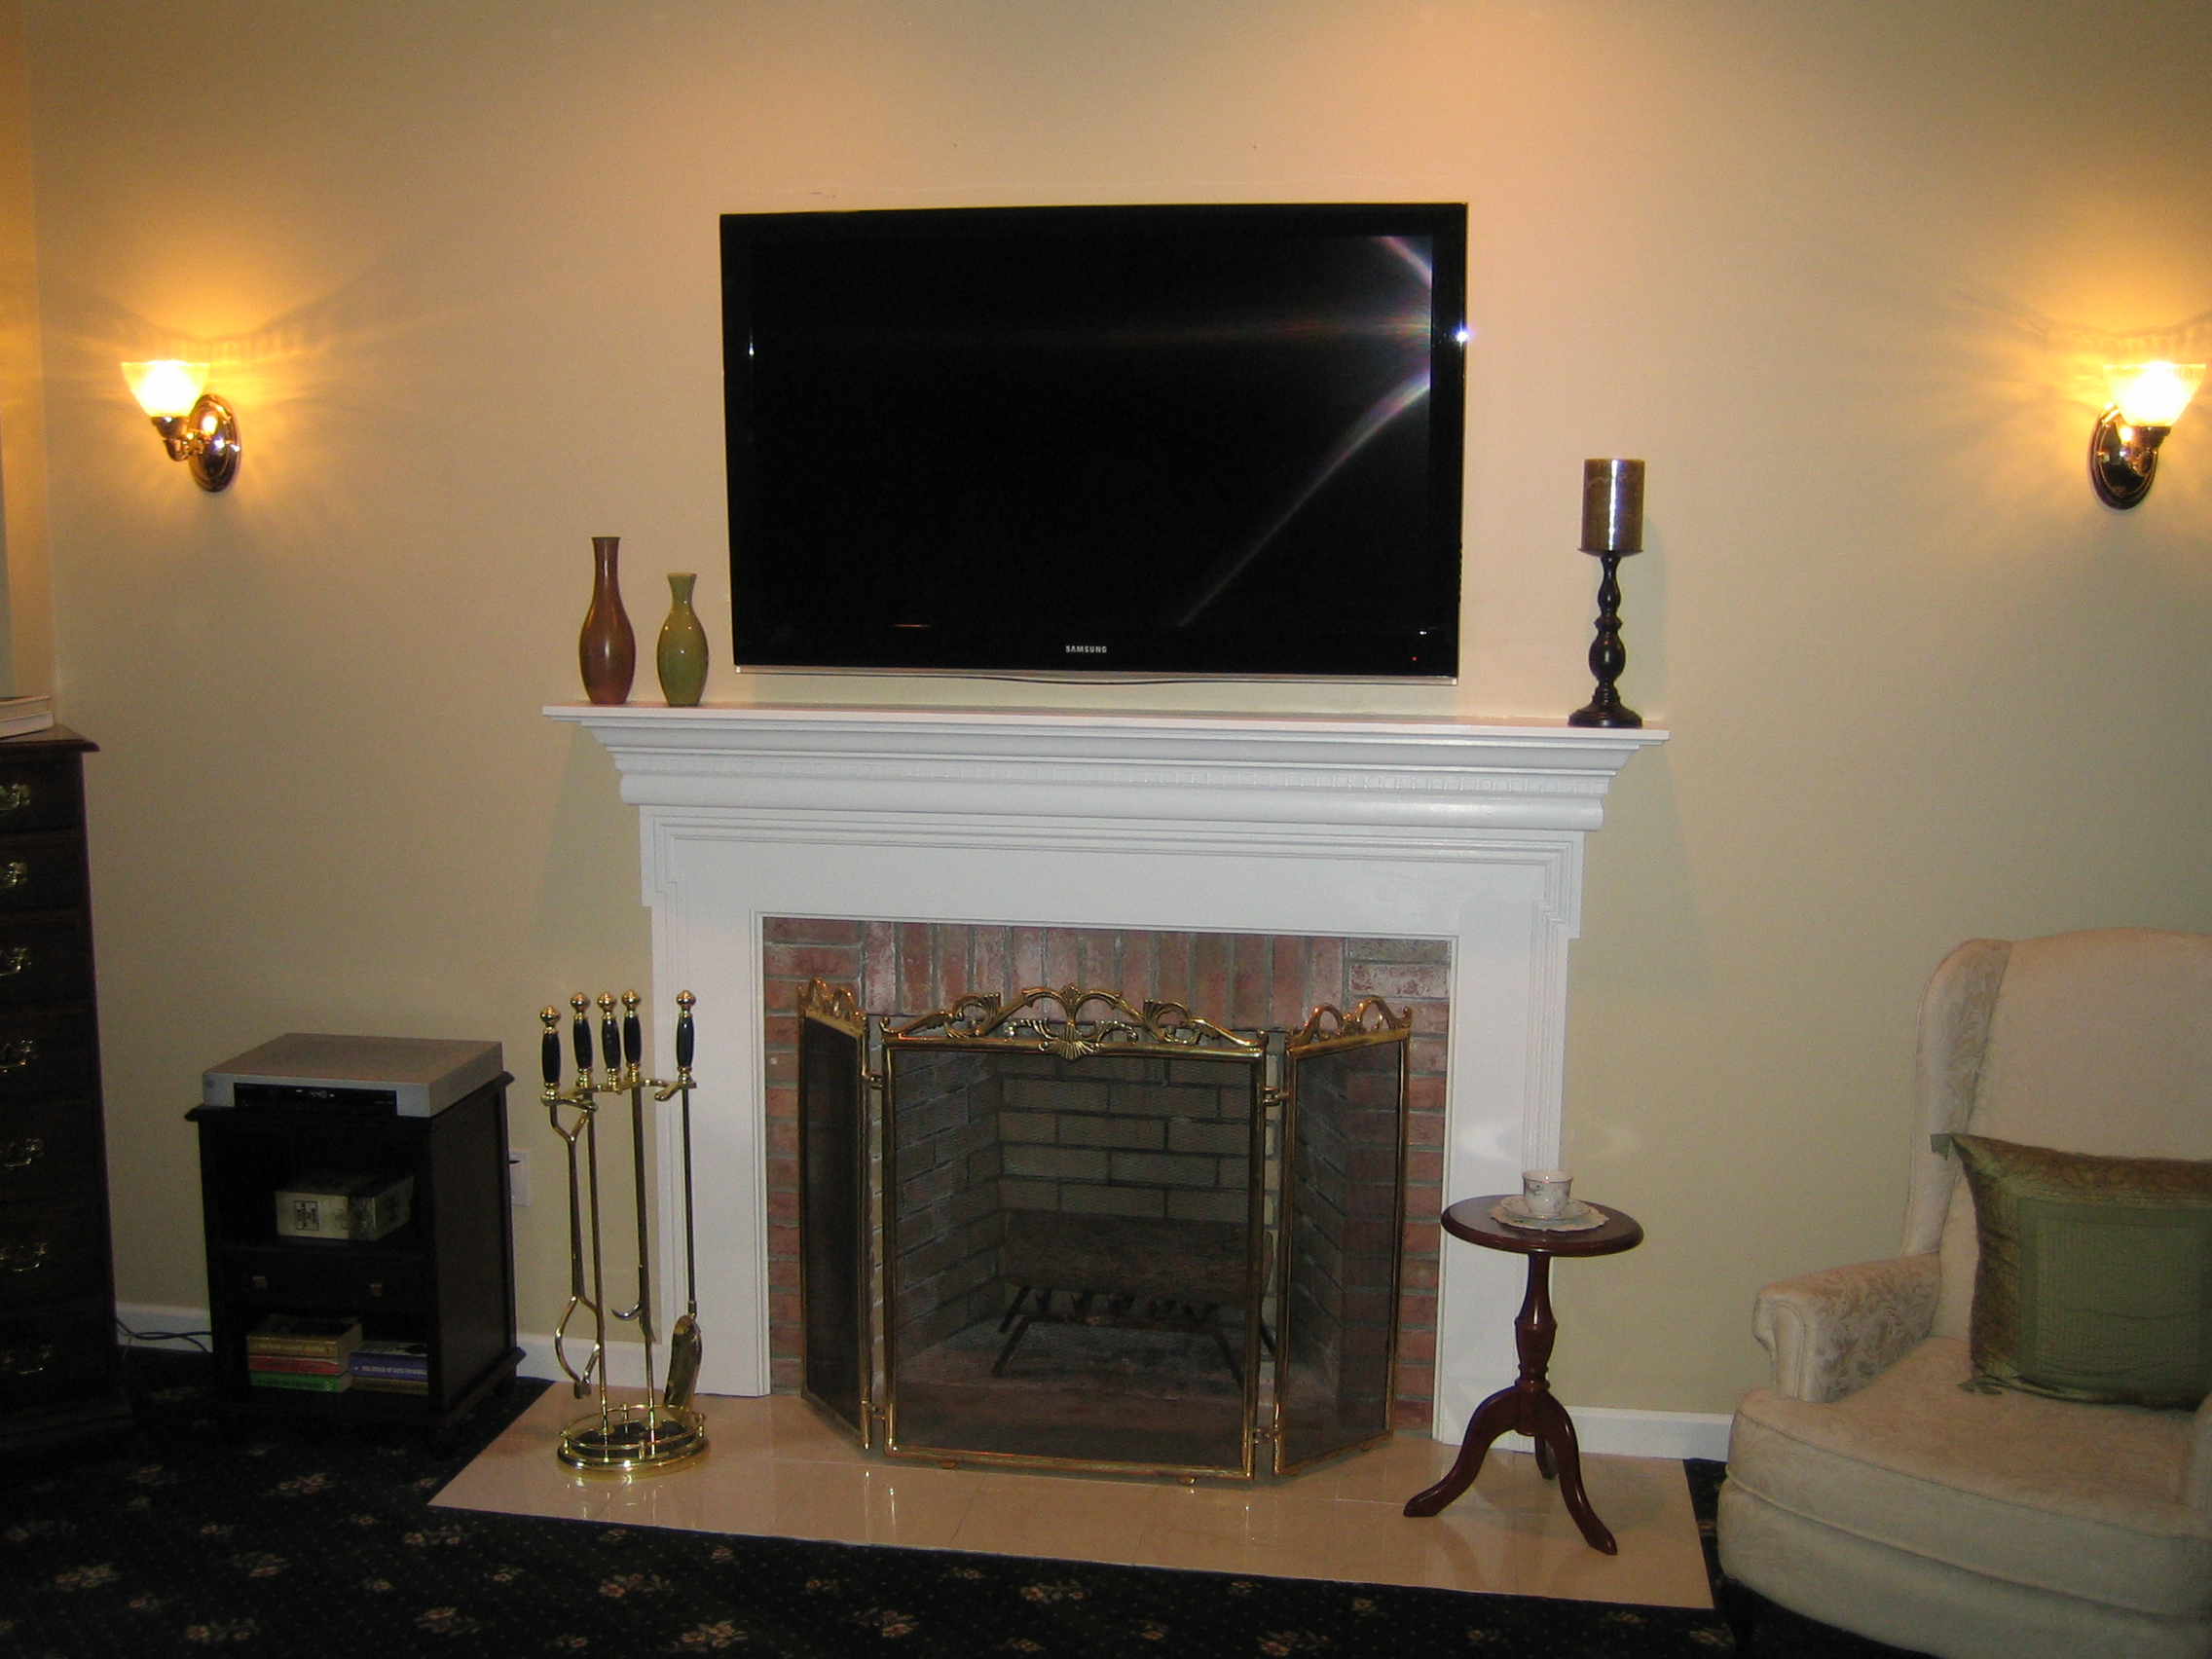 Fireplace with tv above